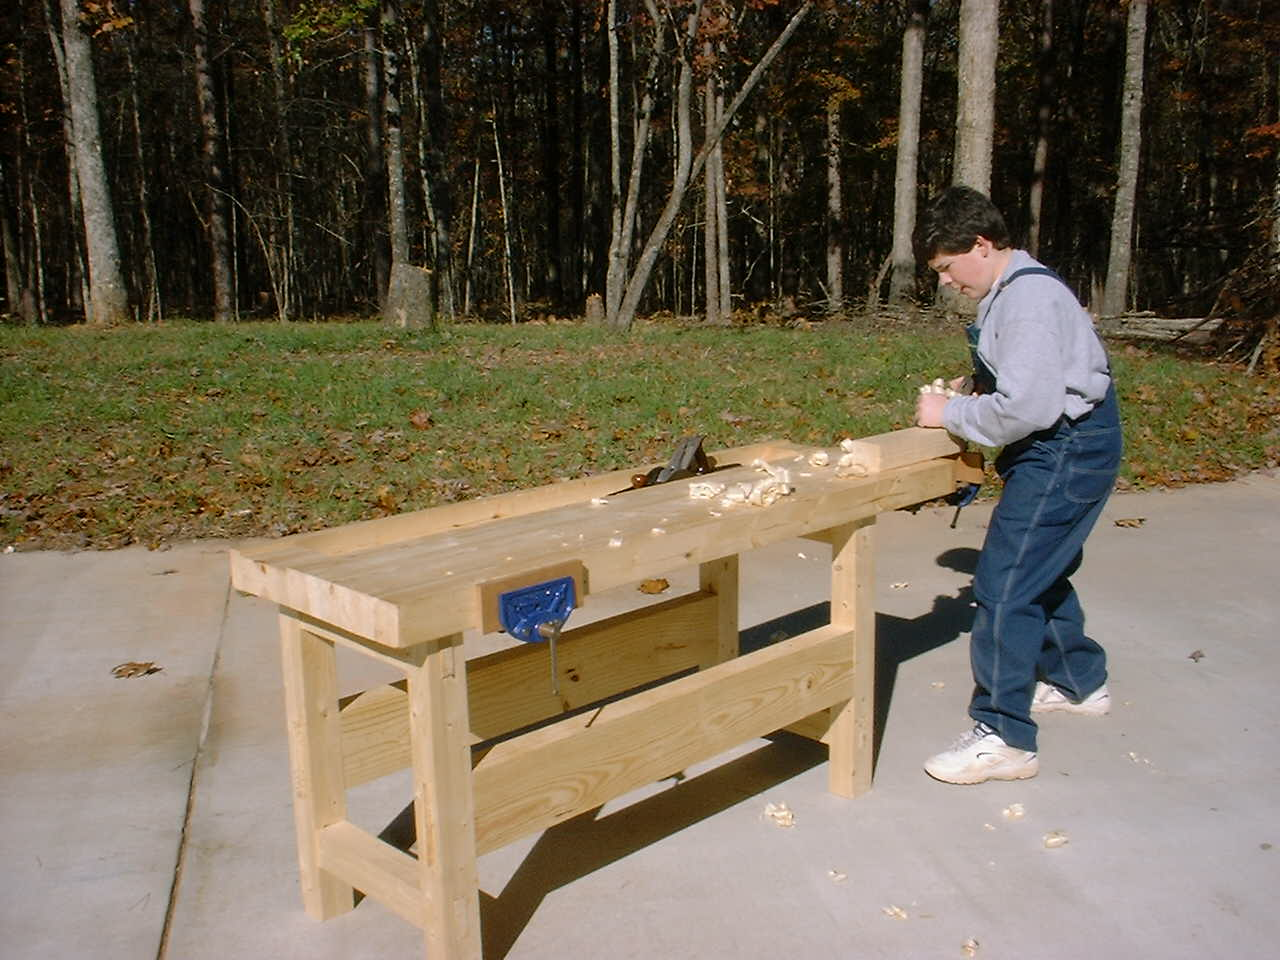 Wishing Work Guide To Get Plans To Build A Wooden Workbench